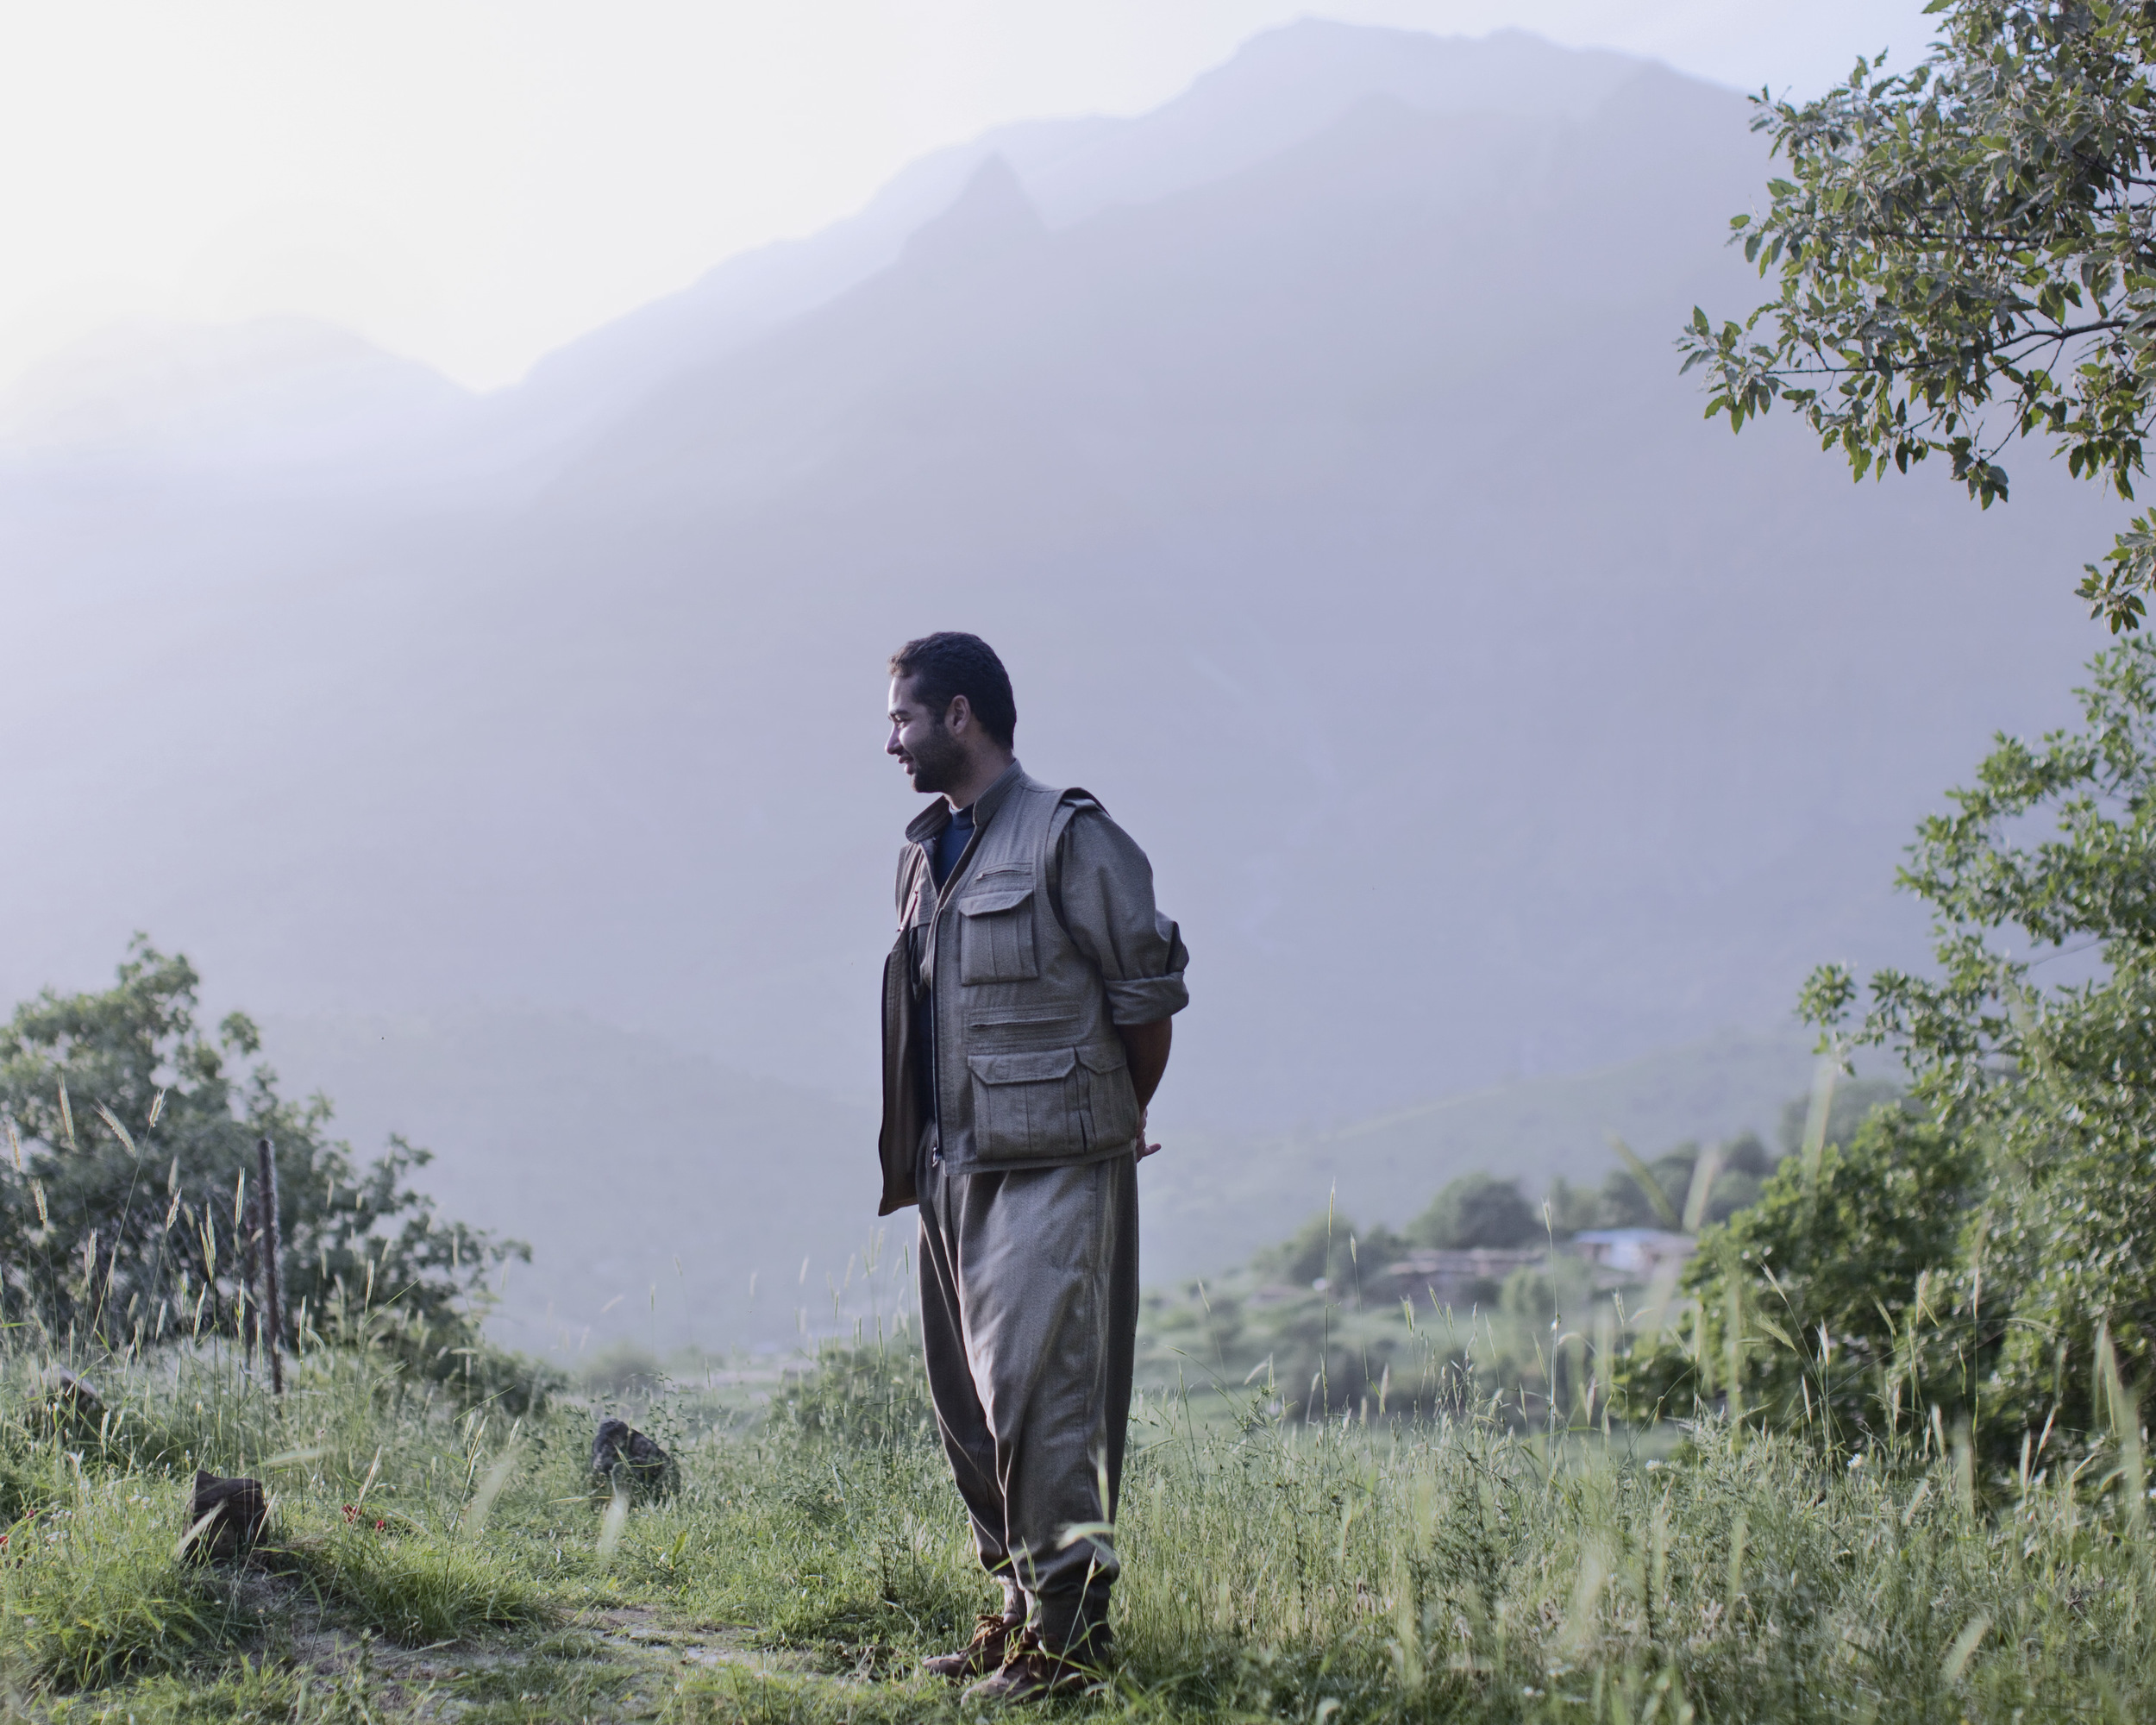 Hans, a guerrilla fighter with the Kurdish Independece fighting force known as PJAK, at his outpost in the Khandil Mountain Range.